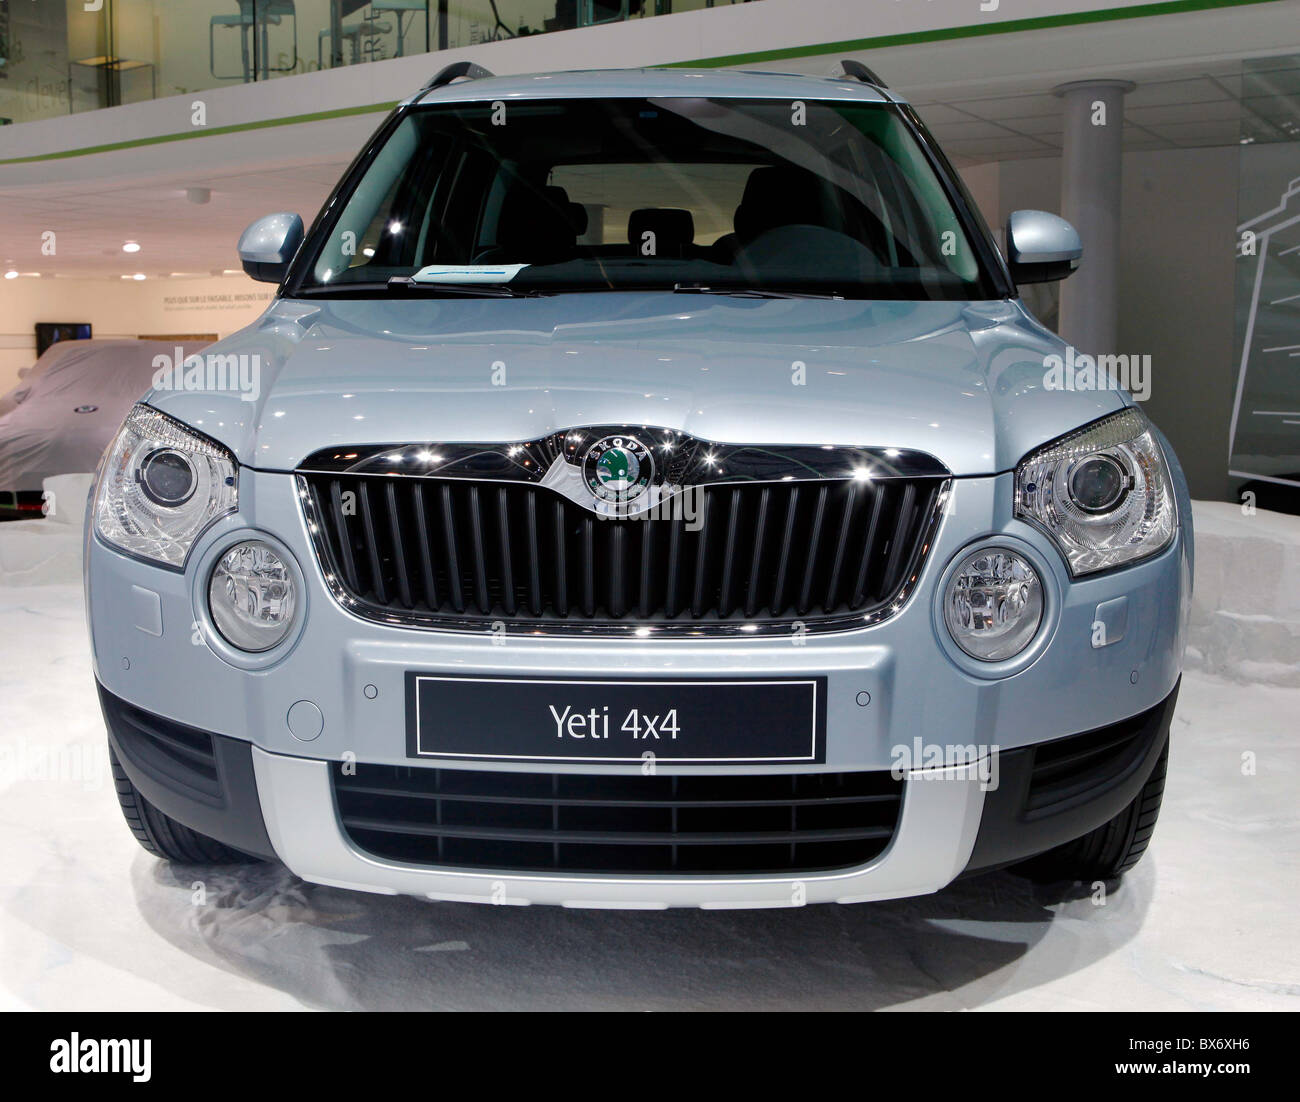 Skoda Yeti Suv Car Stock Photo Royalty Free Image Alamy